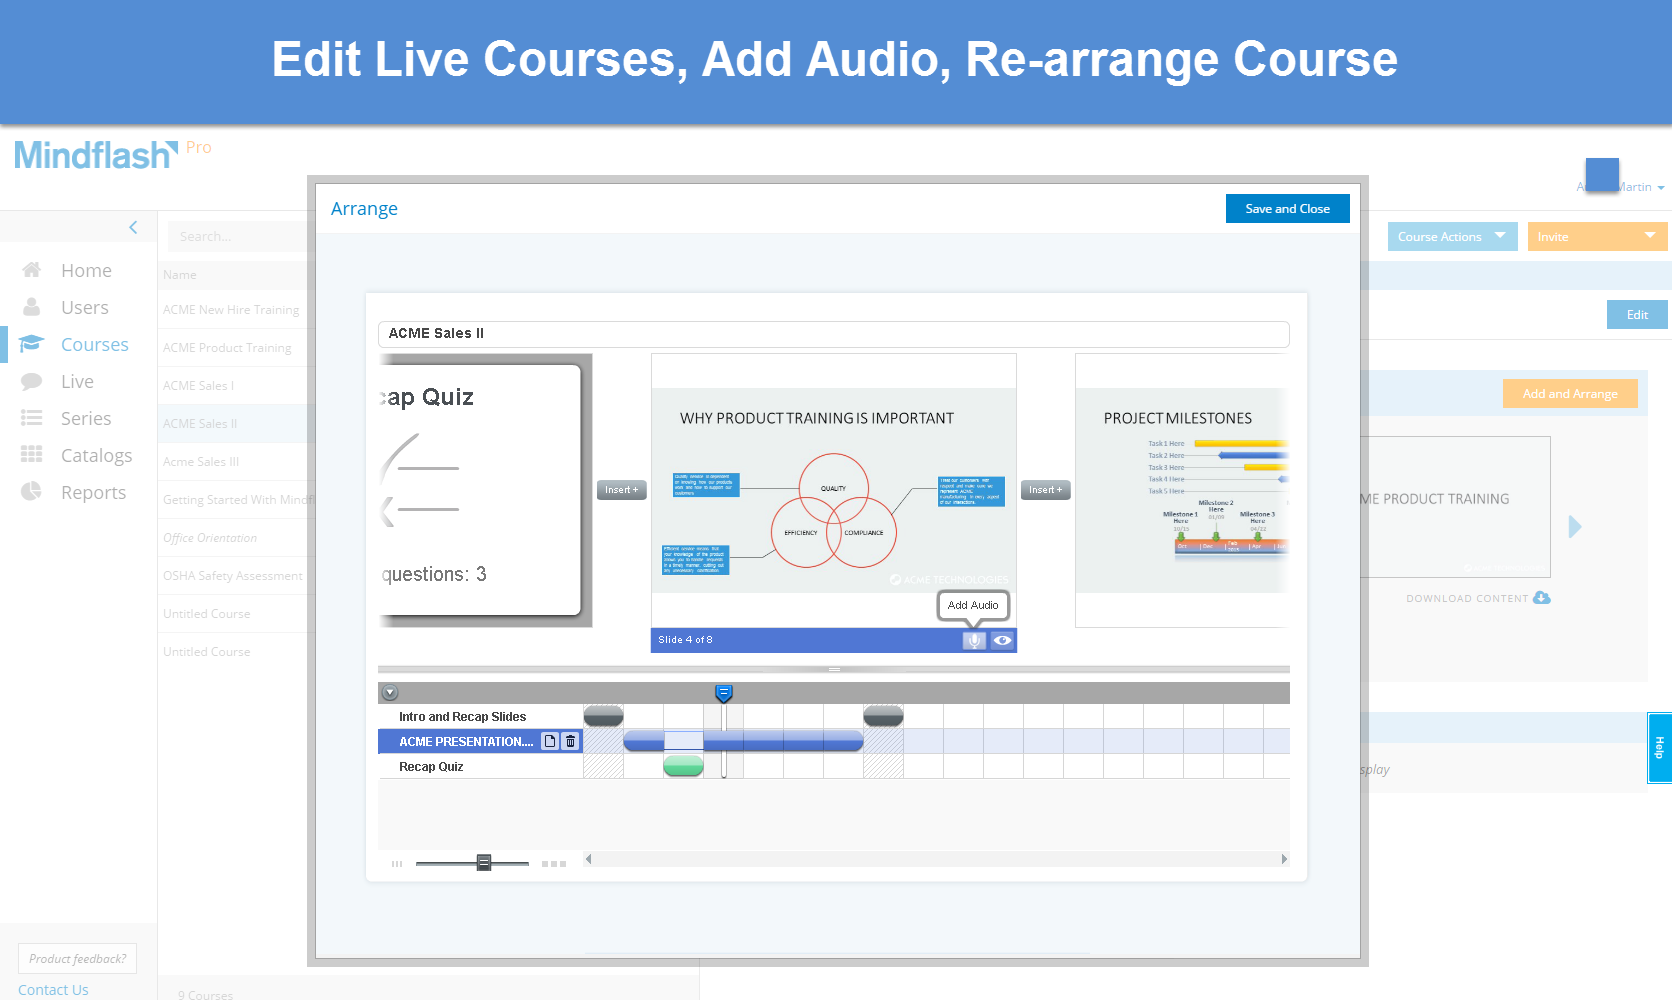 Mindflash allows users to edit live courses, insert audio and arrange courses